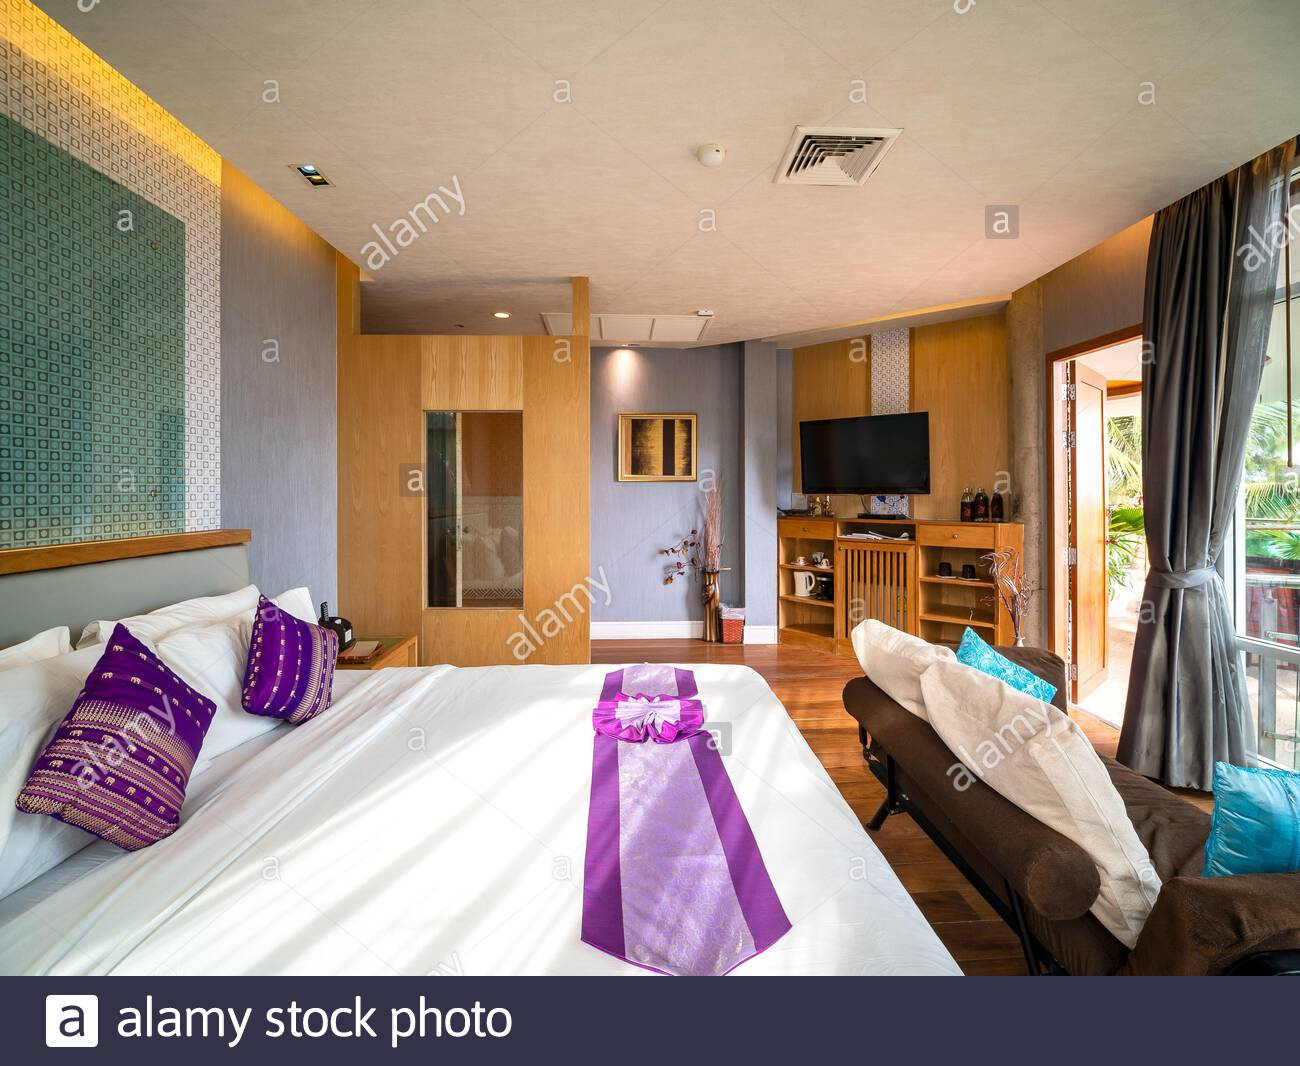 luxury room decor with brown wooden floor and furniture in warm light and window glasss for see view outside room of hotel resort in thailand 2AJRFDP